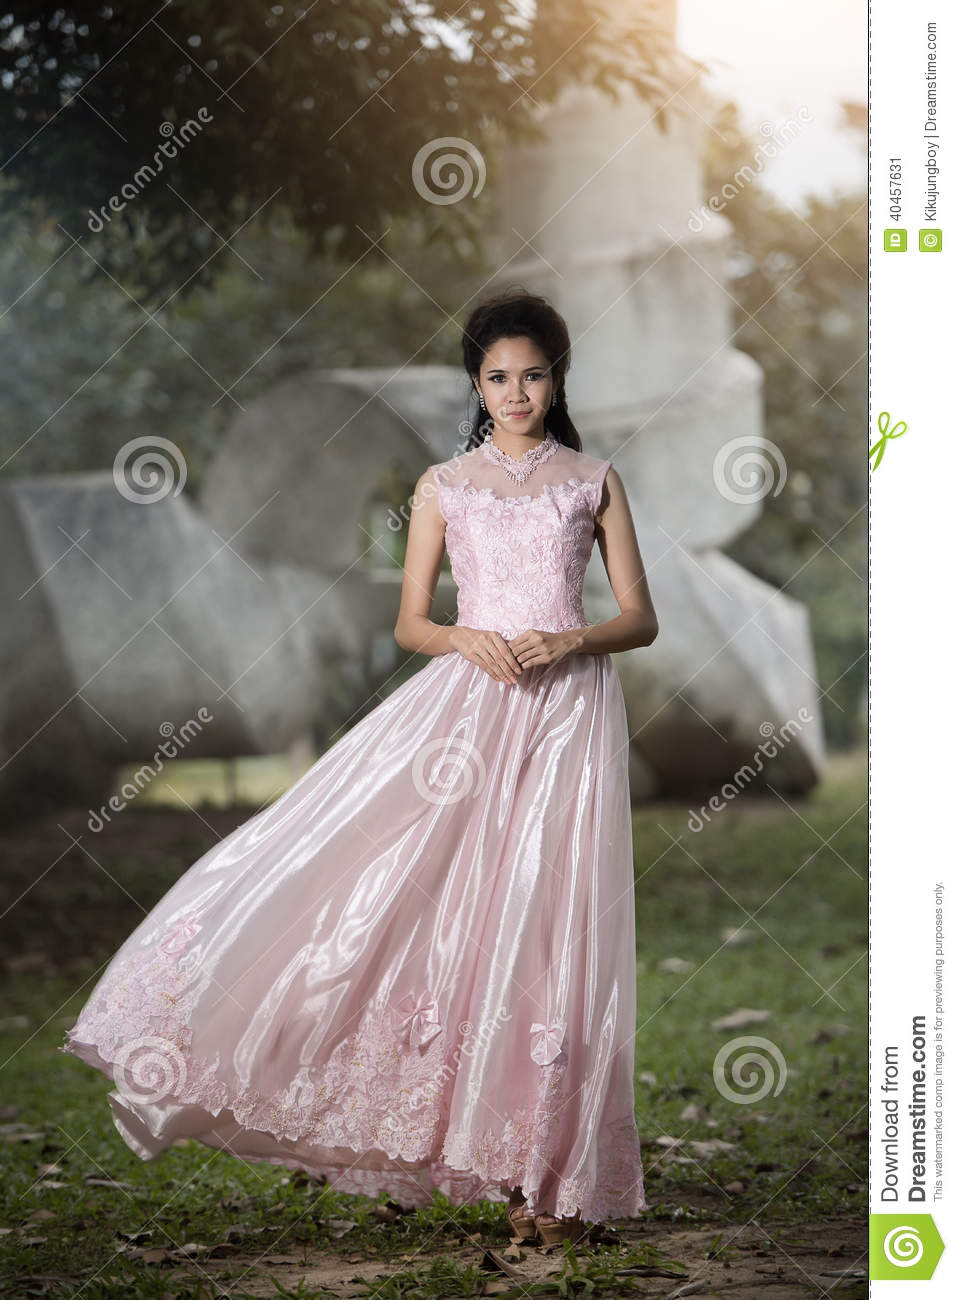 Were visited asian girl wedding dress remarkable